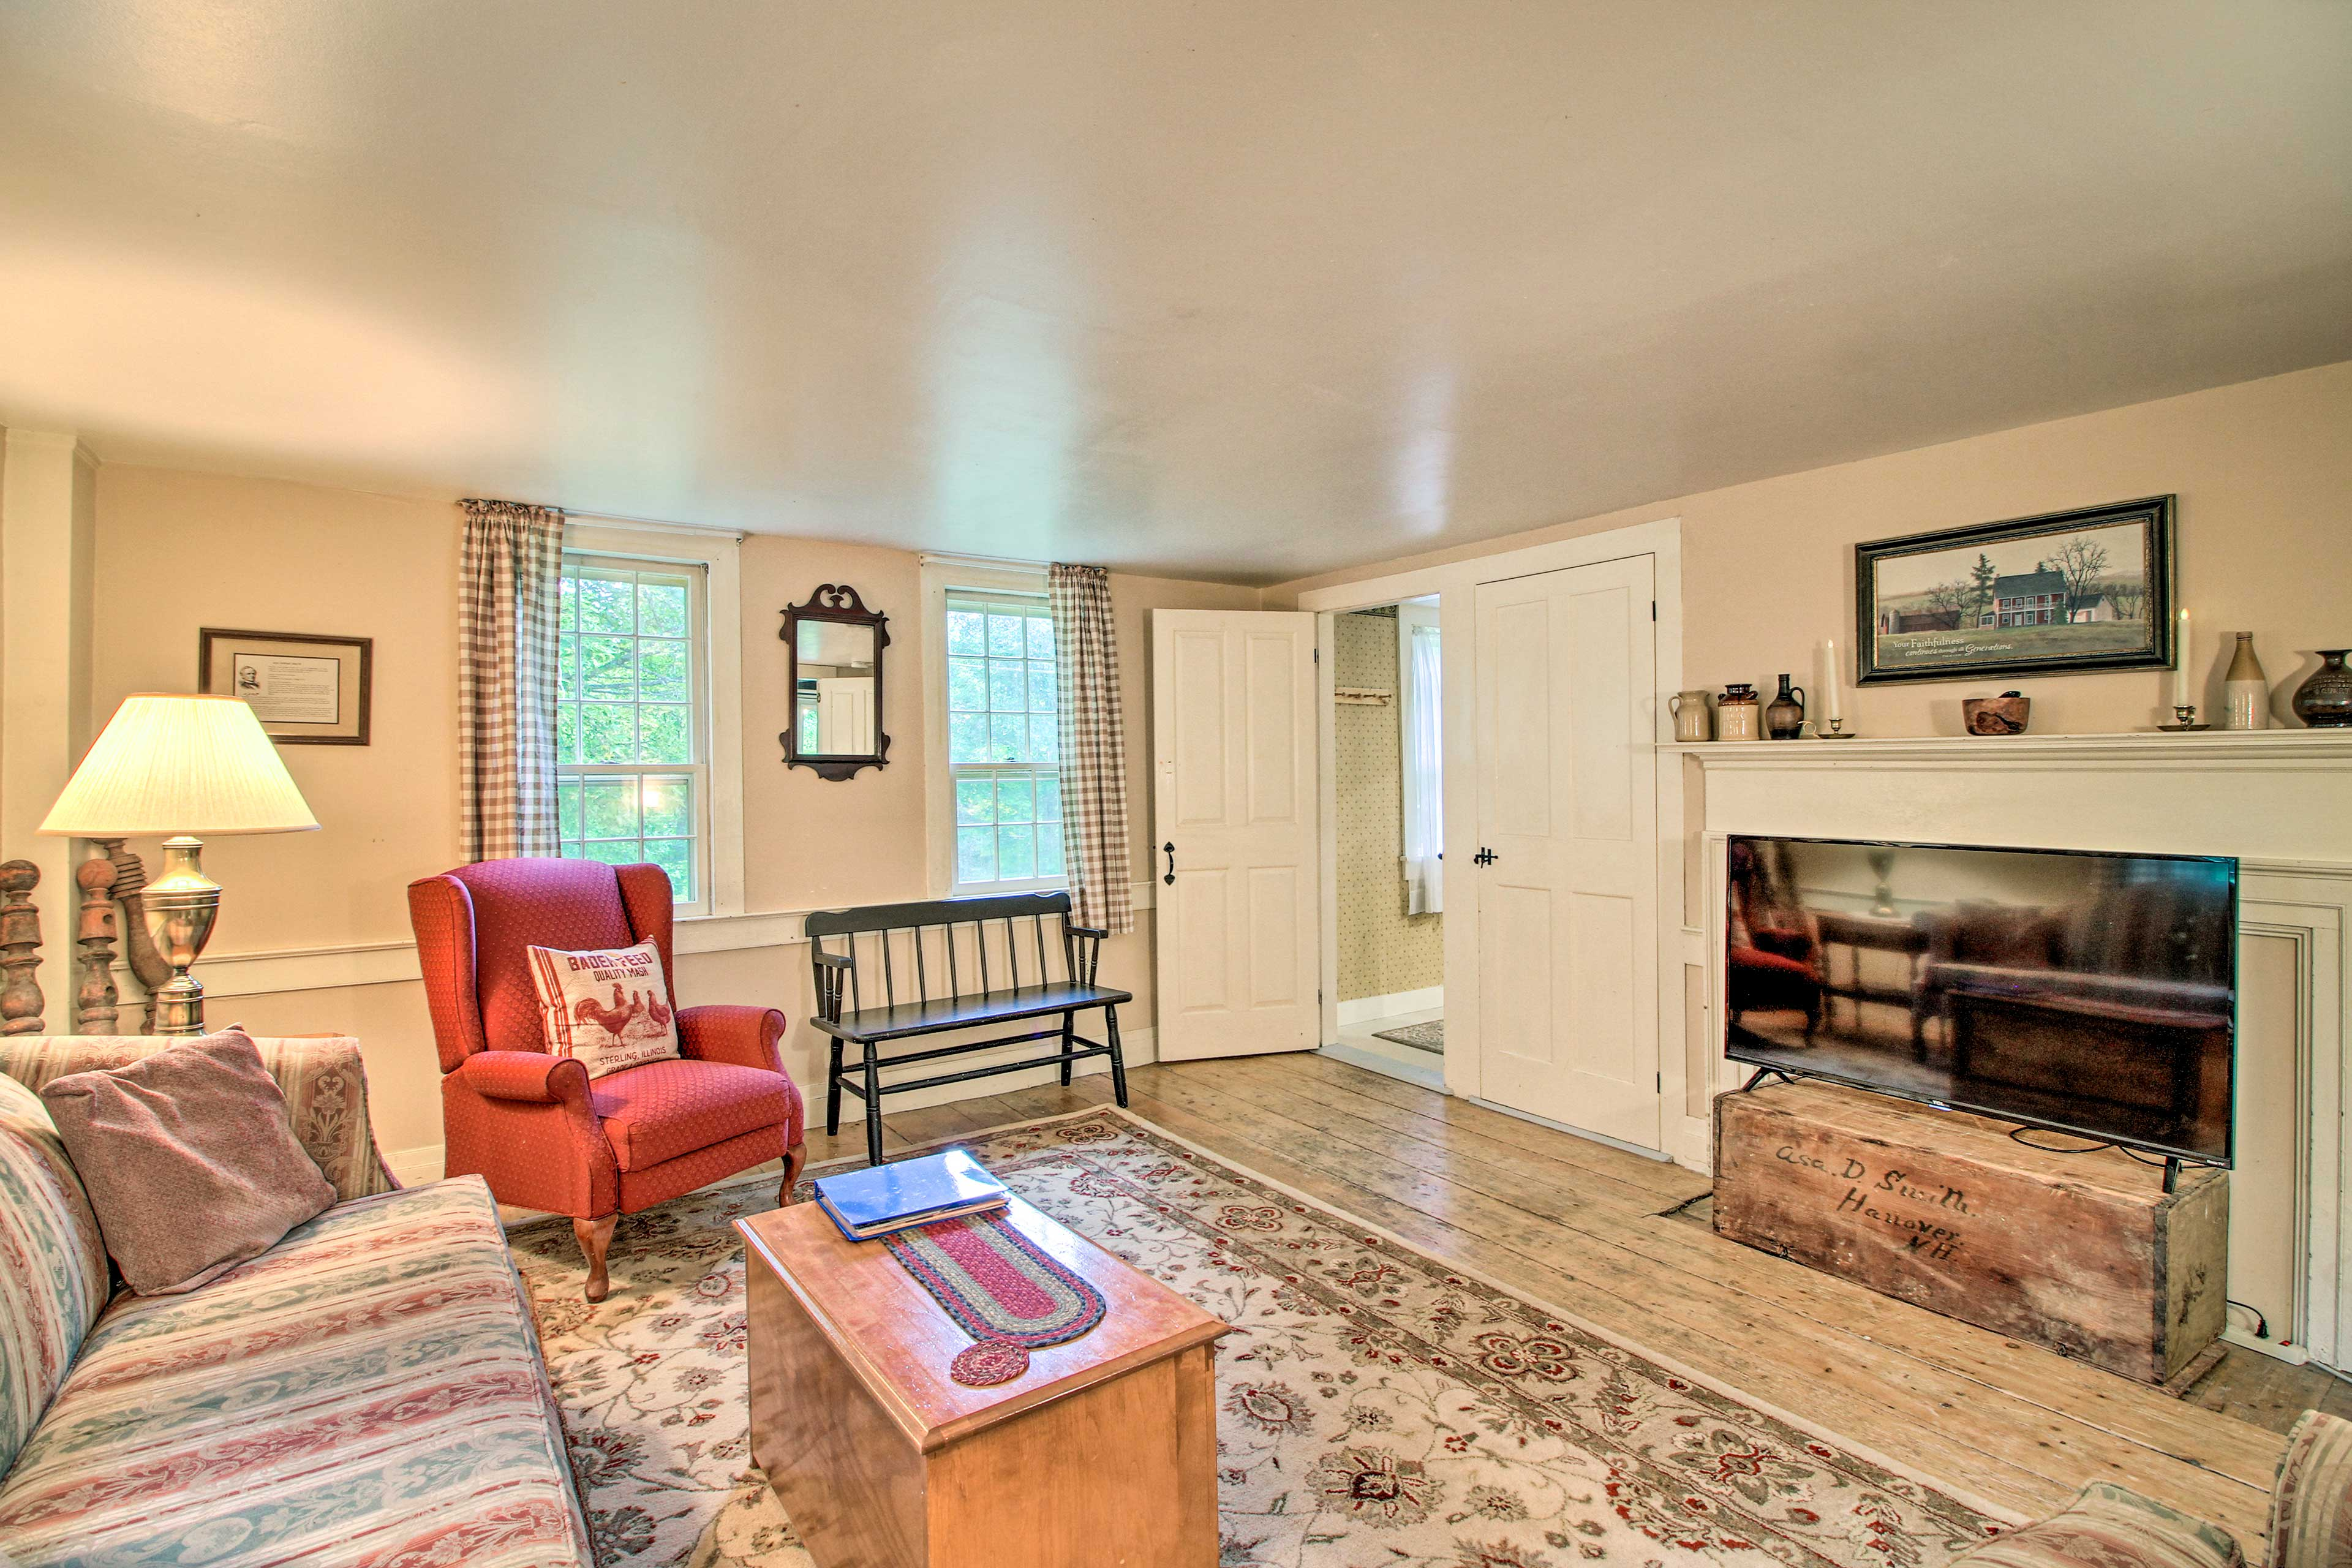 Spread out throughout 1,700 square feet of living space.